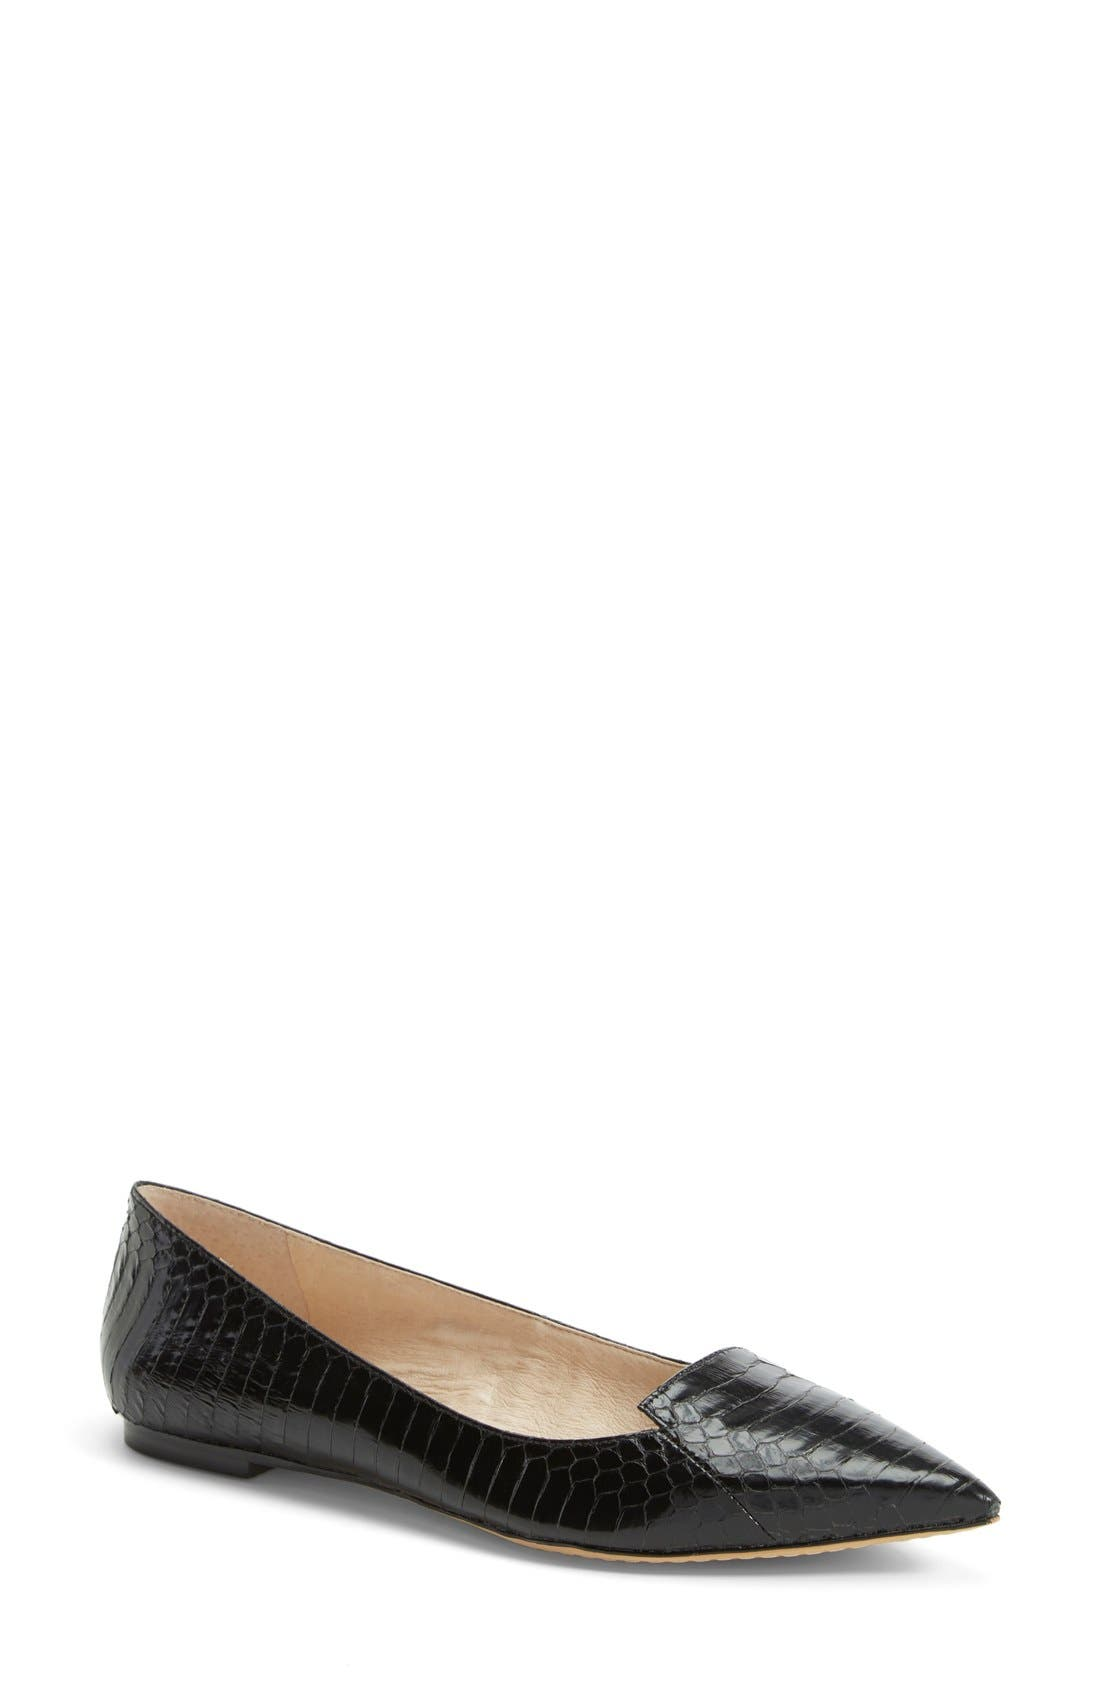 Main Image - Vince Camuto 'Empa' Pointy Toe Loafer Flat (Women) (Nordstrom Exclusive)